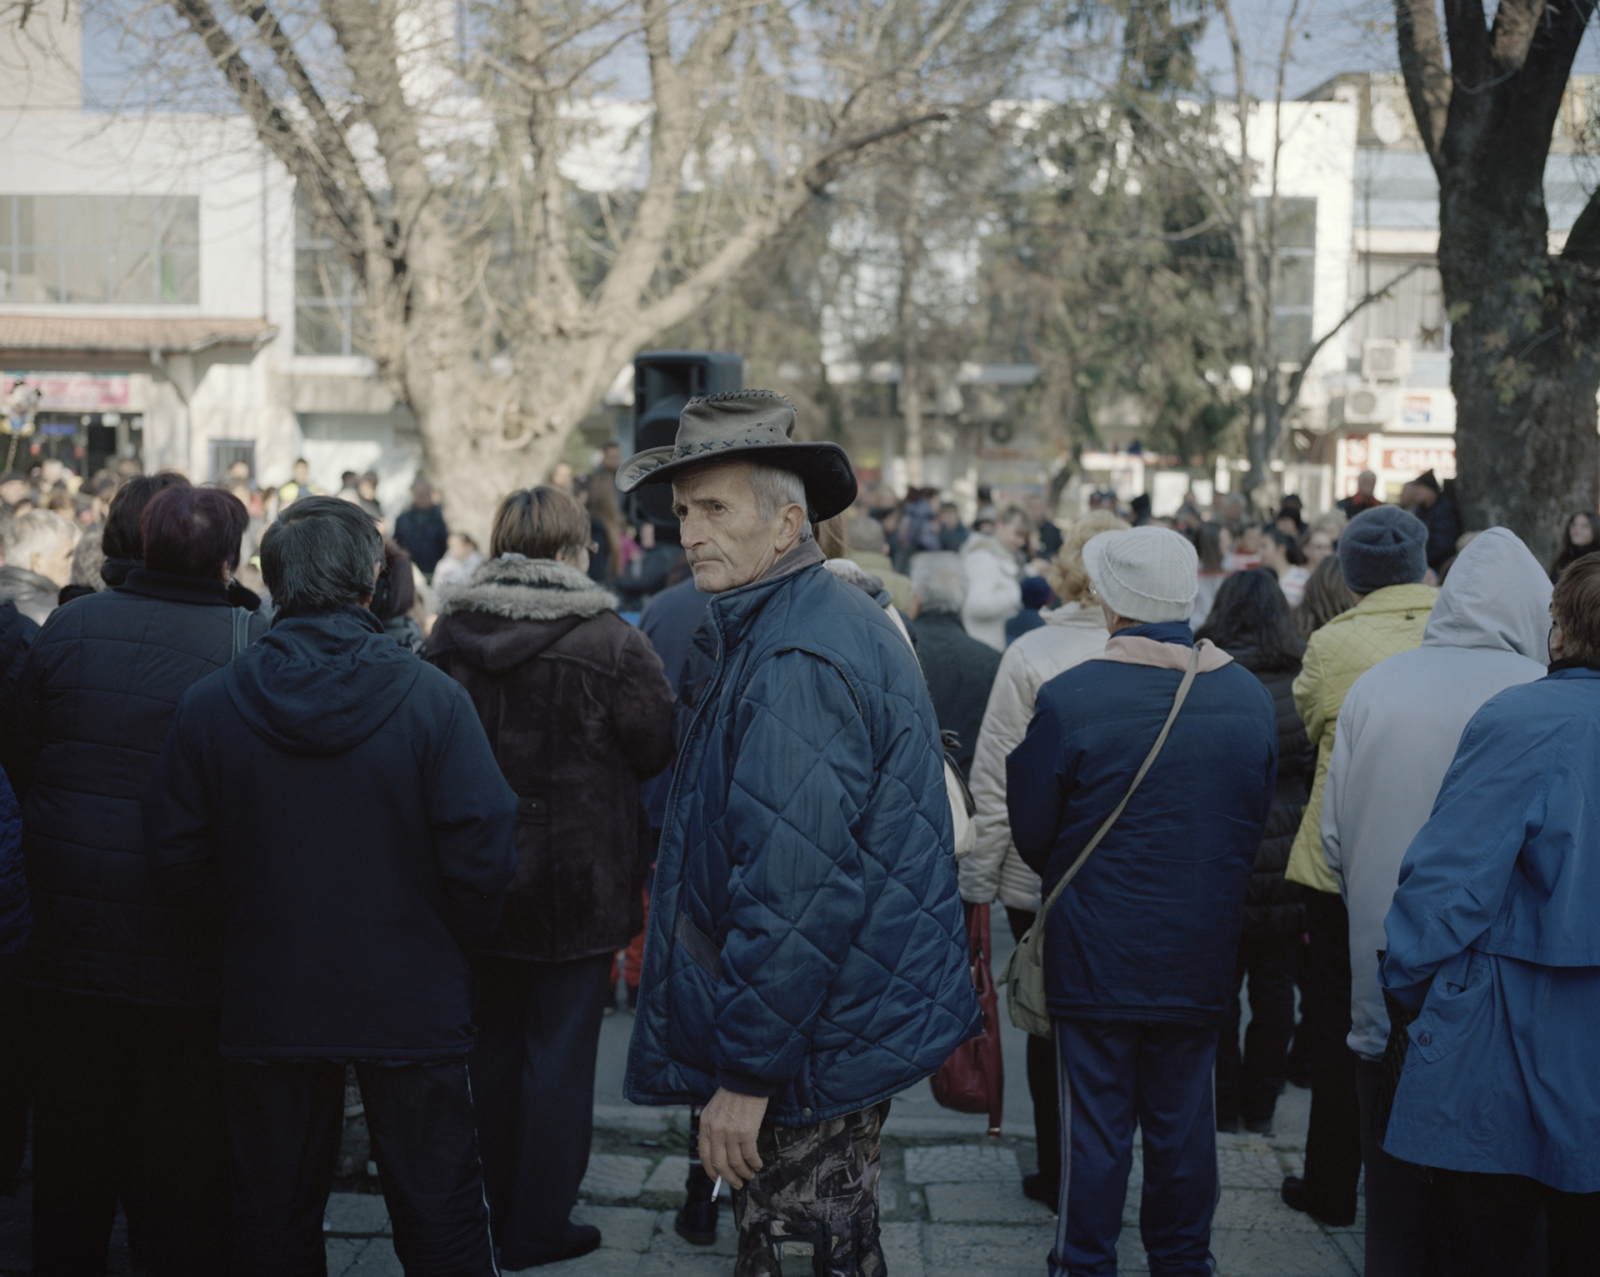 Bulgaria, Svilengrad. A man watching Christmas celebration on the road.